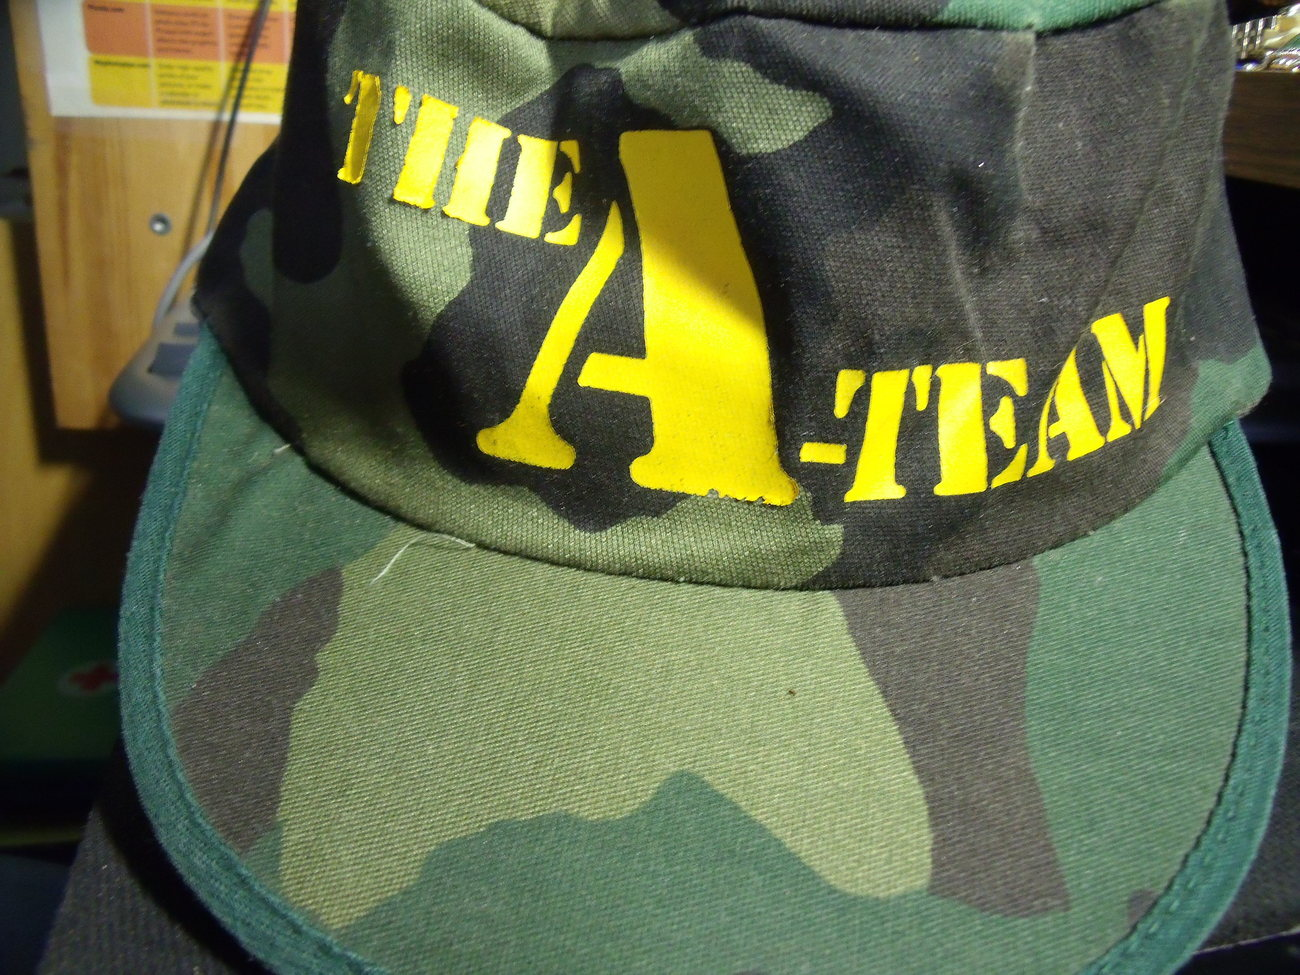 A-Team Cap from era of Television Show Never Worn